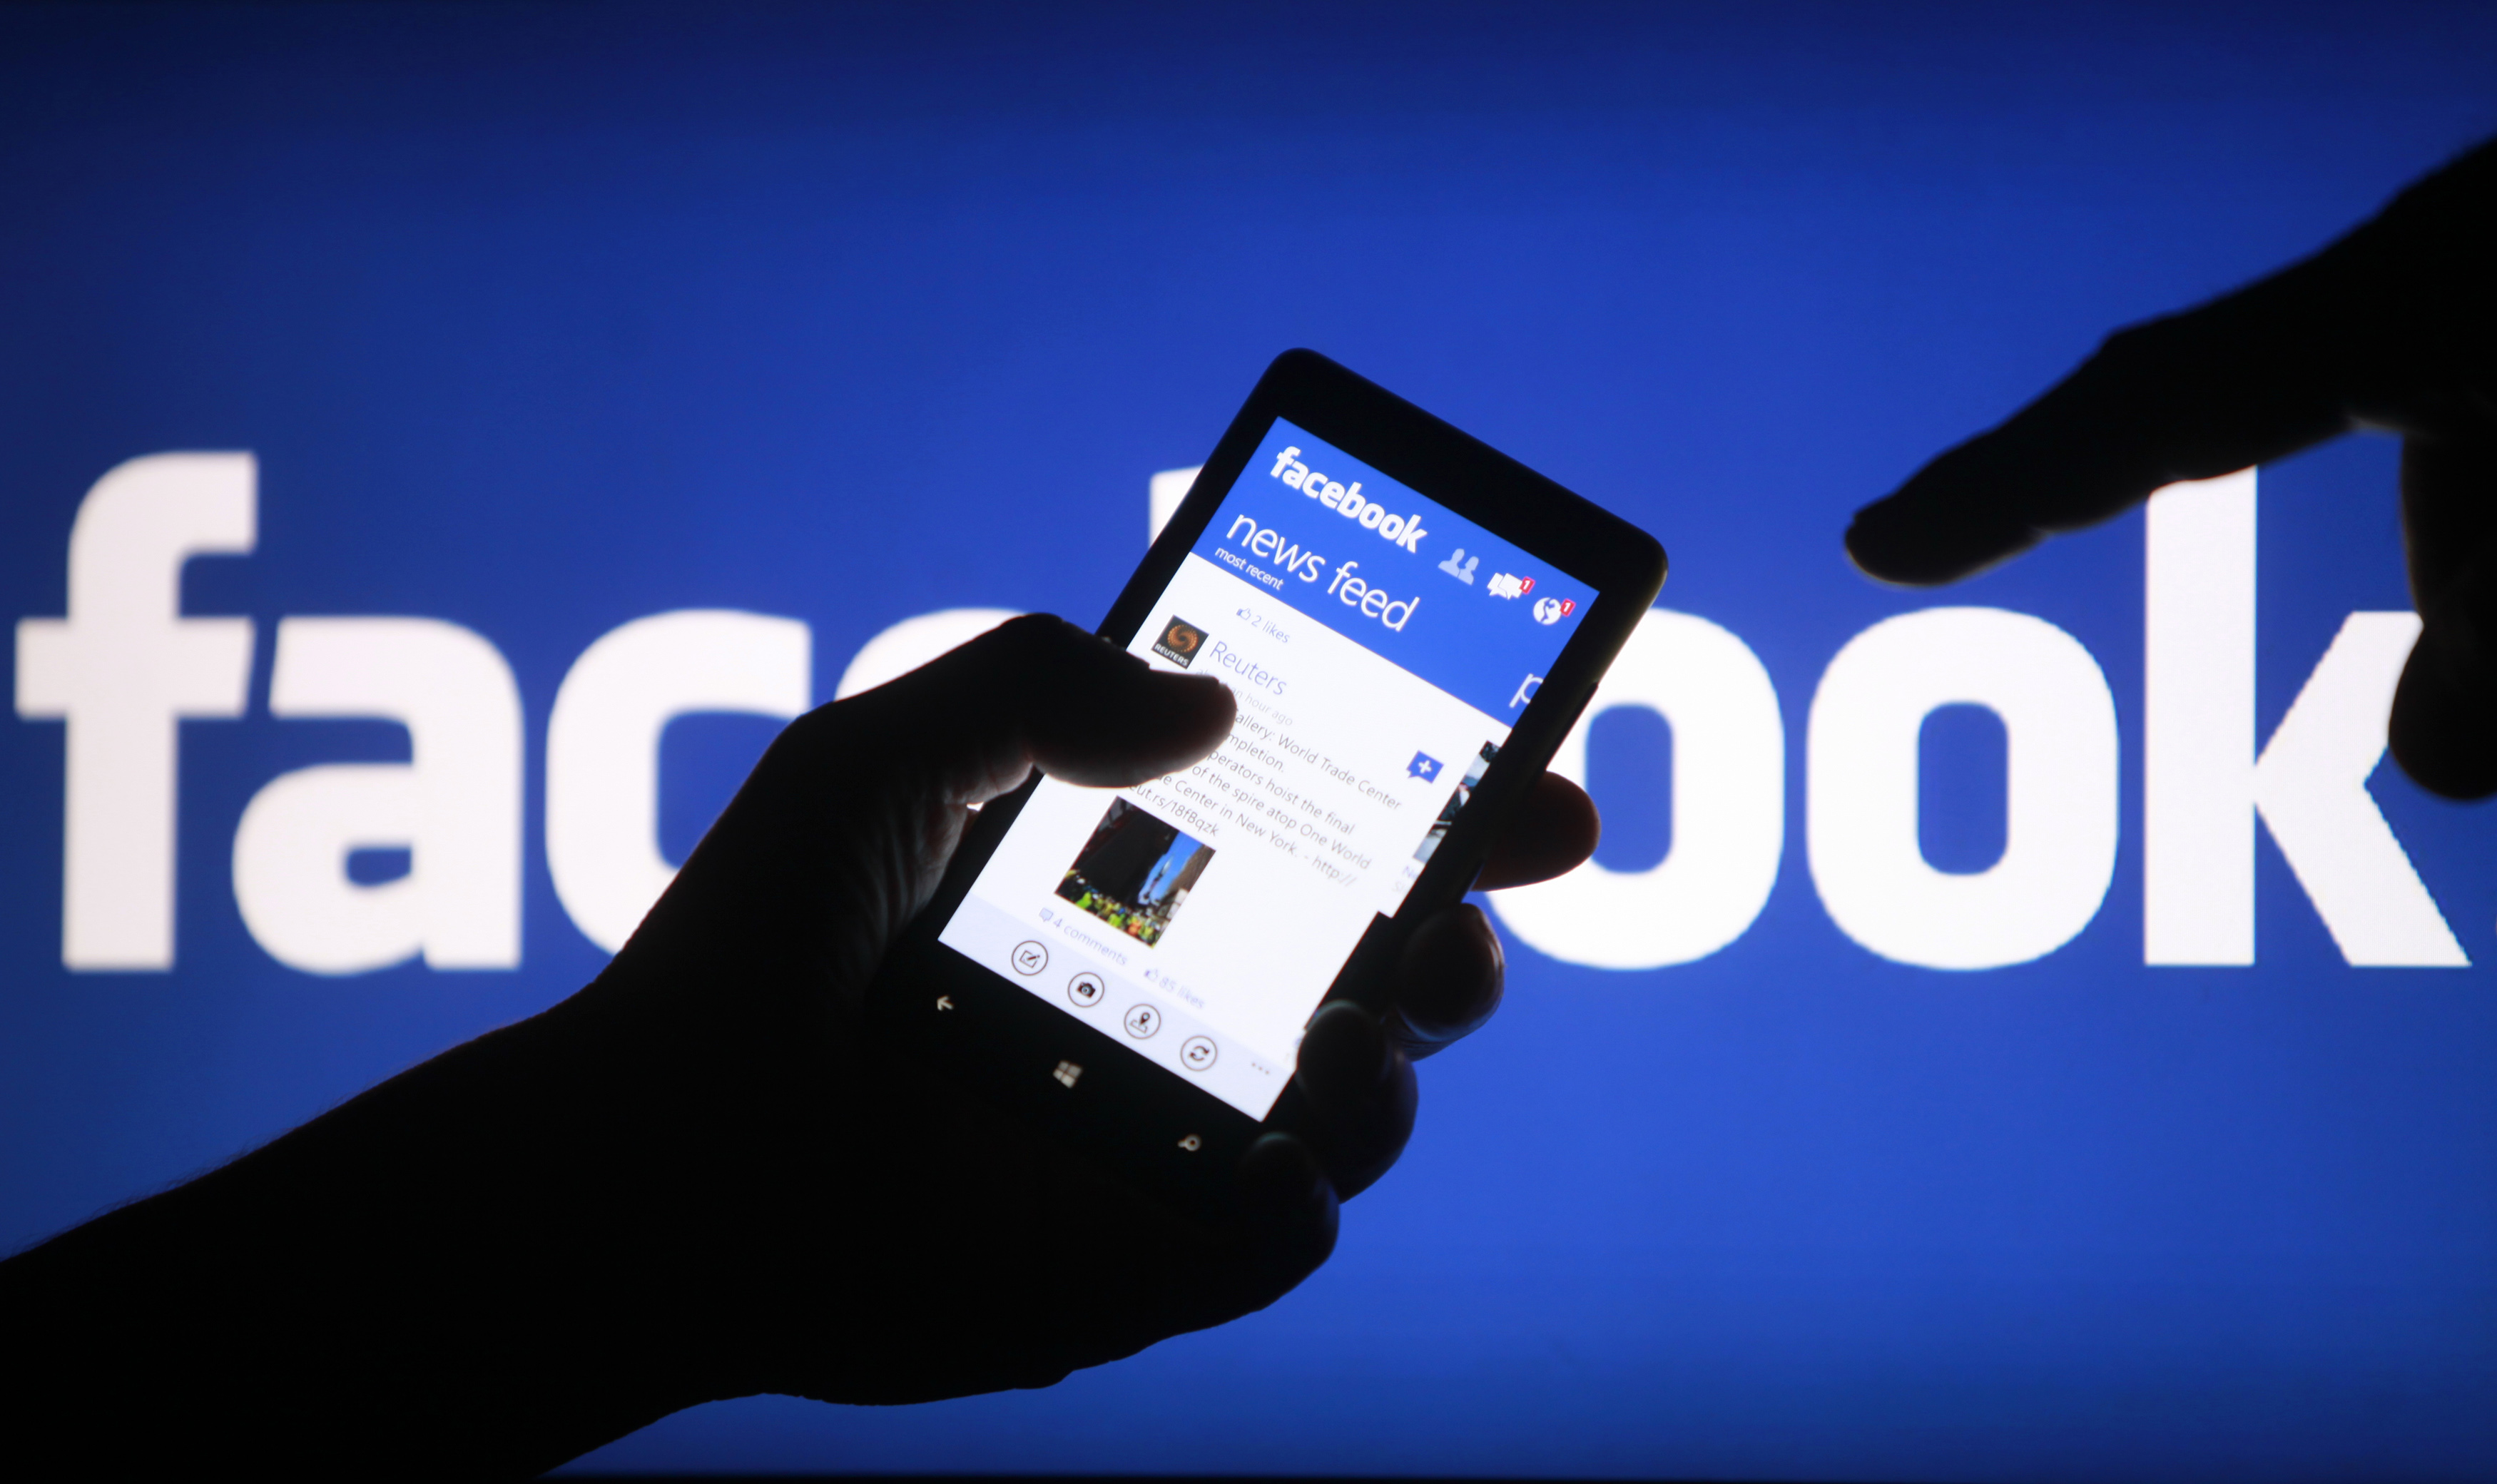 A smartphone user shows the Facebook application on his phone in the central Bosnian town of Zenica, in this photo illustration, May 2, 2013.  Facebook Inc's mobile advertising revenue growth gained momentum in the first three months of the year as the social network sold more ads to users on smartphones and tablets, partially offsetting higher spending which weighed on profits. REUTERS/Dado Ruvic (BOSNIA AND HERZEGOVINA - Tags: SOCIETY SCIENCE TECHNOLOGY BUSINESS) - RTXZ81J